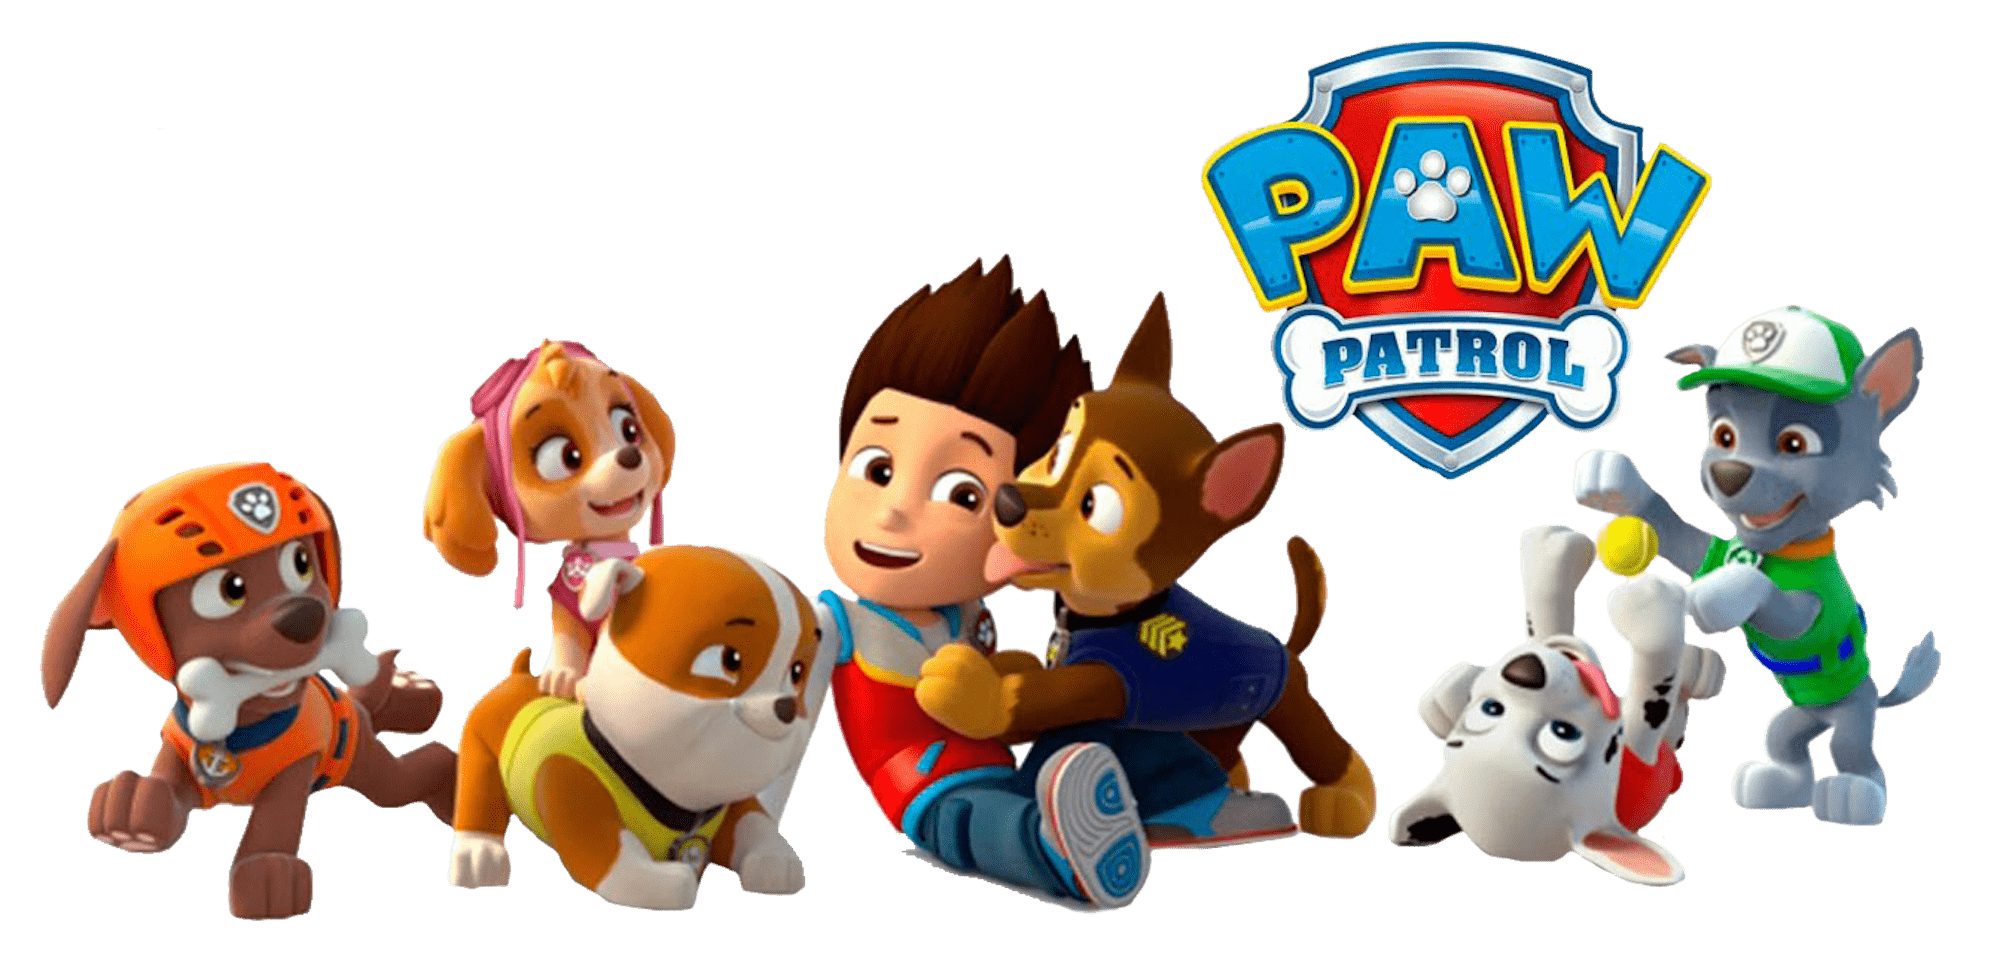 Paw patrol clipart png 3 » Clipart Station.